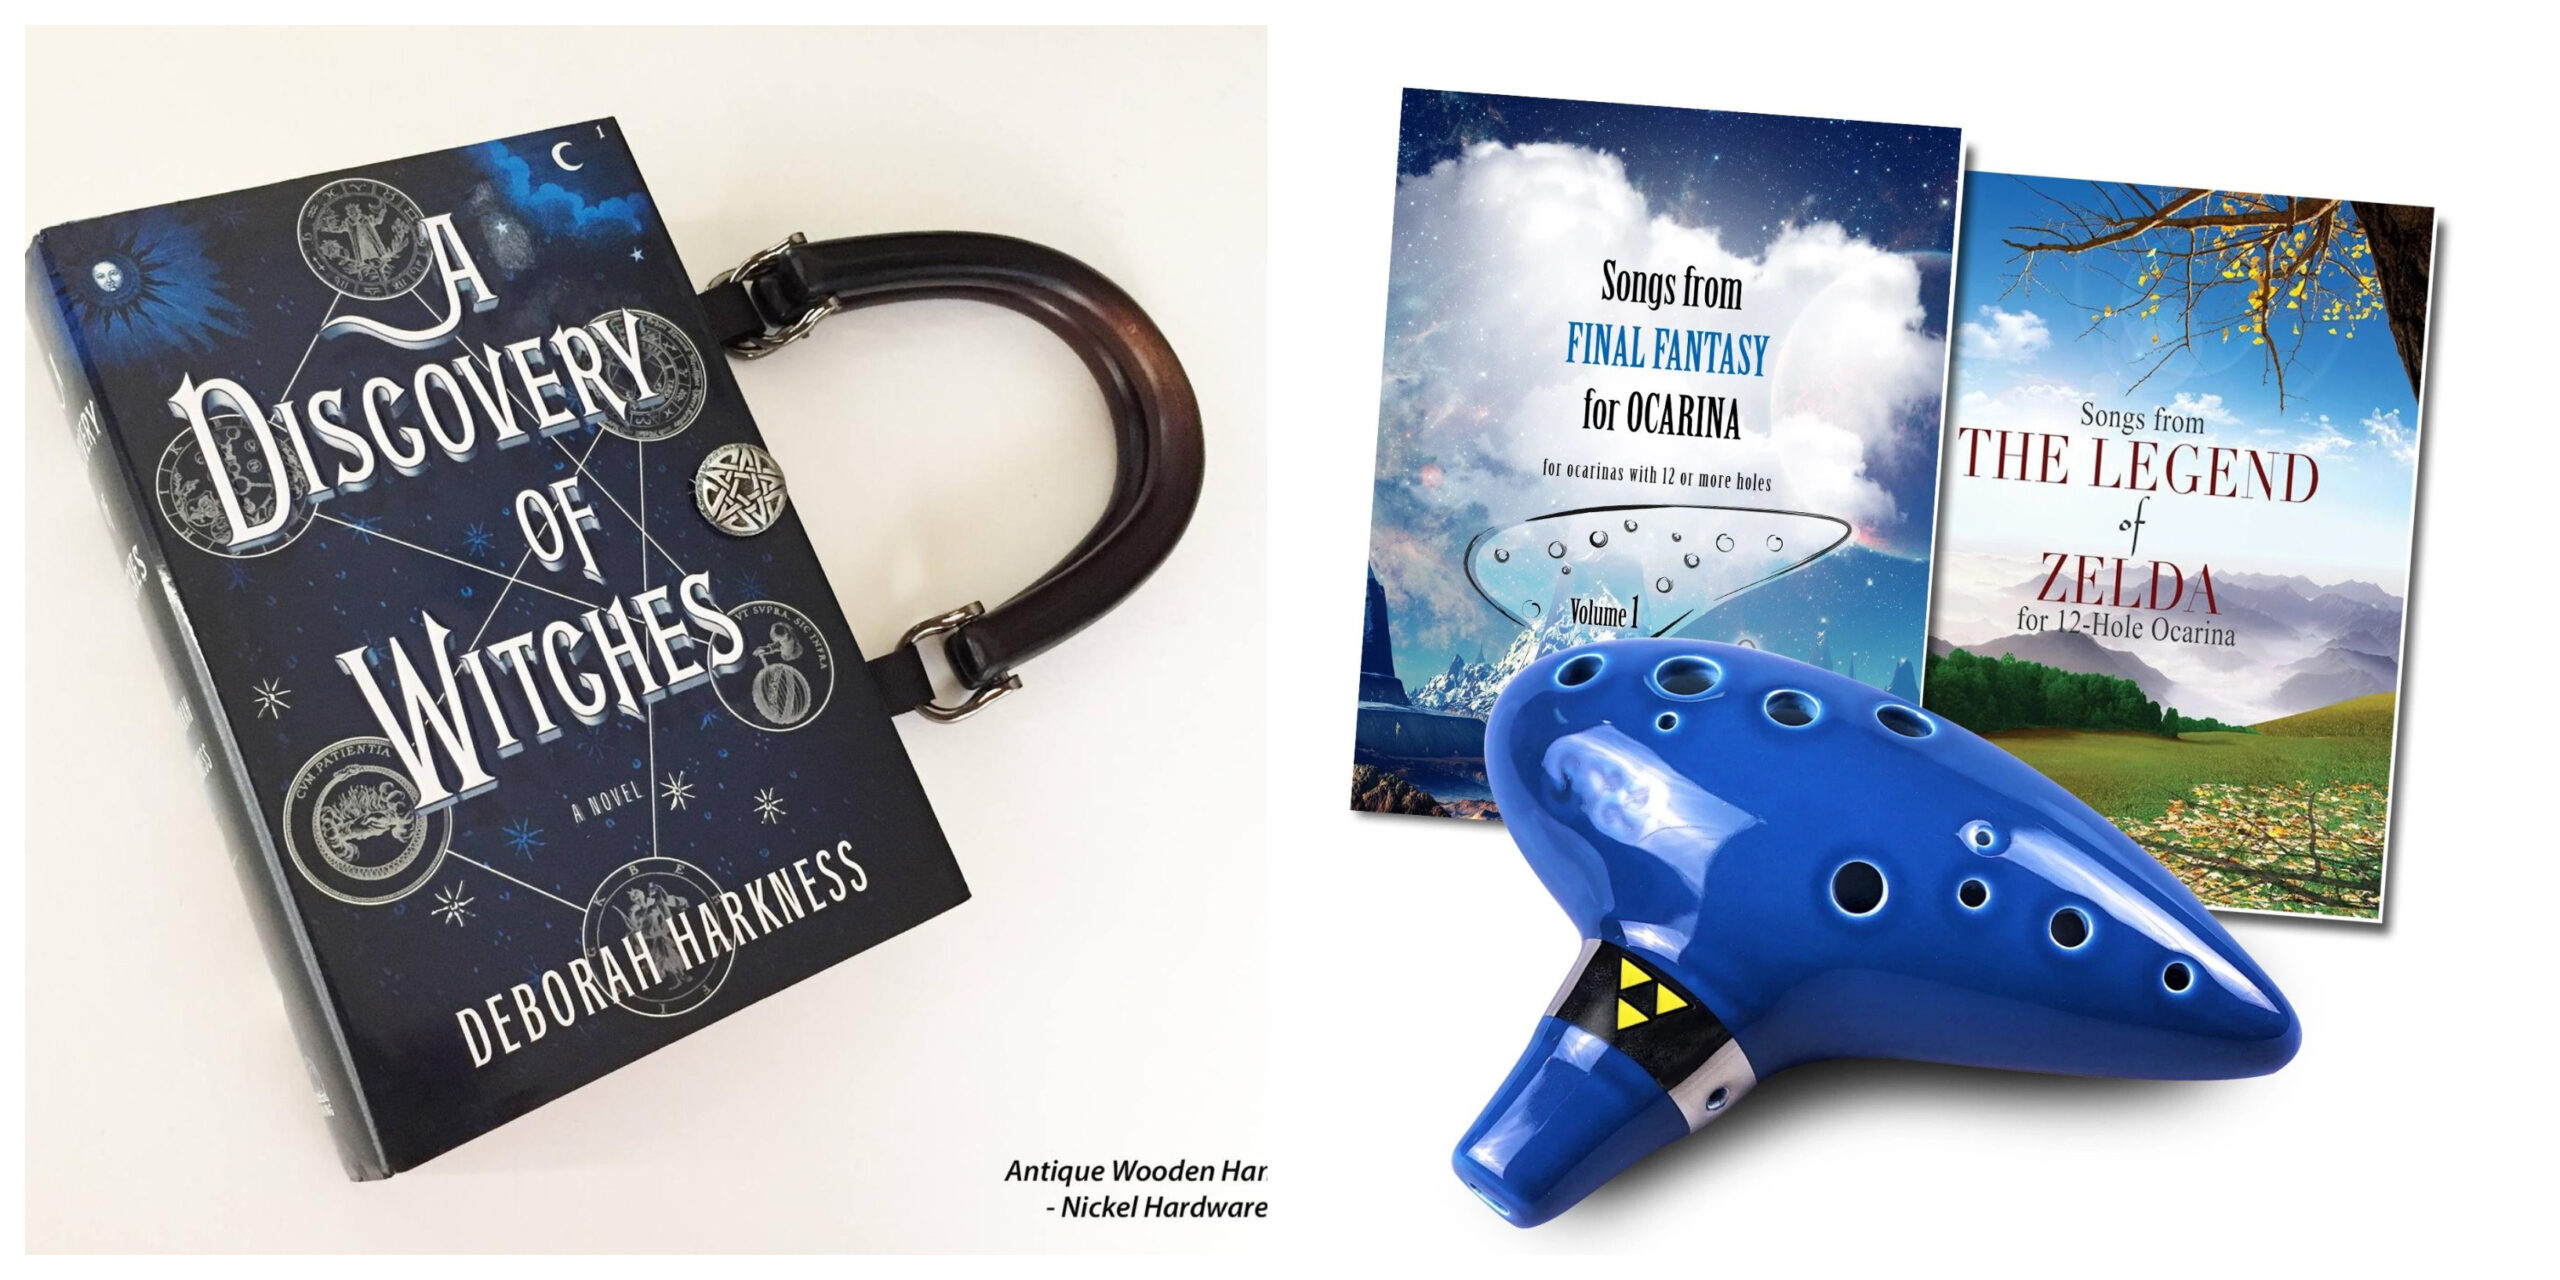 A Discovery of Witches Book Purse and Legend of Zelda Ocarina